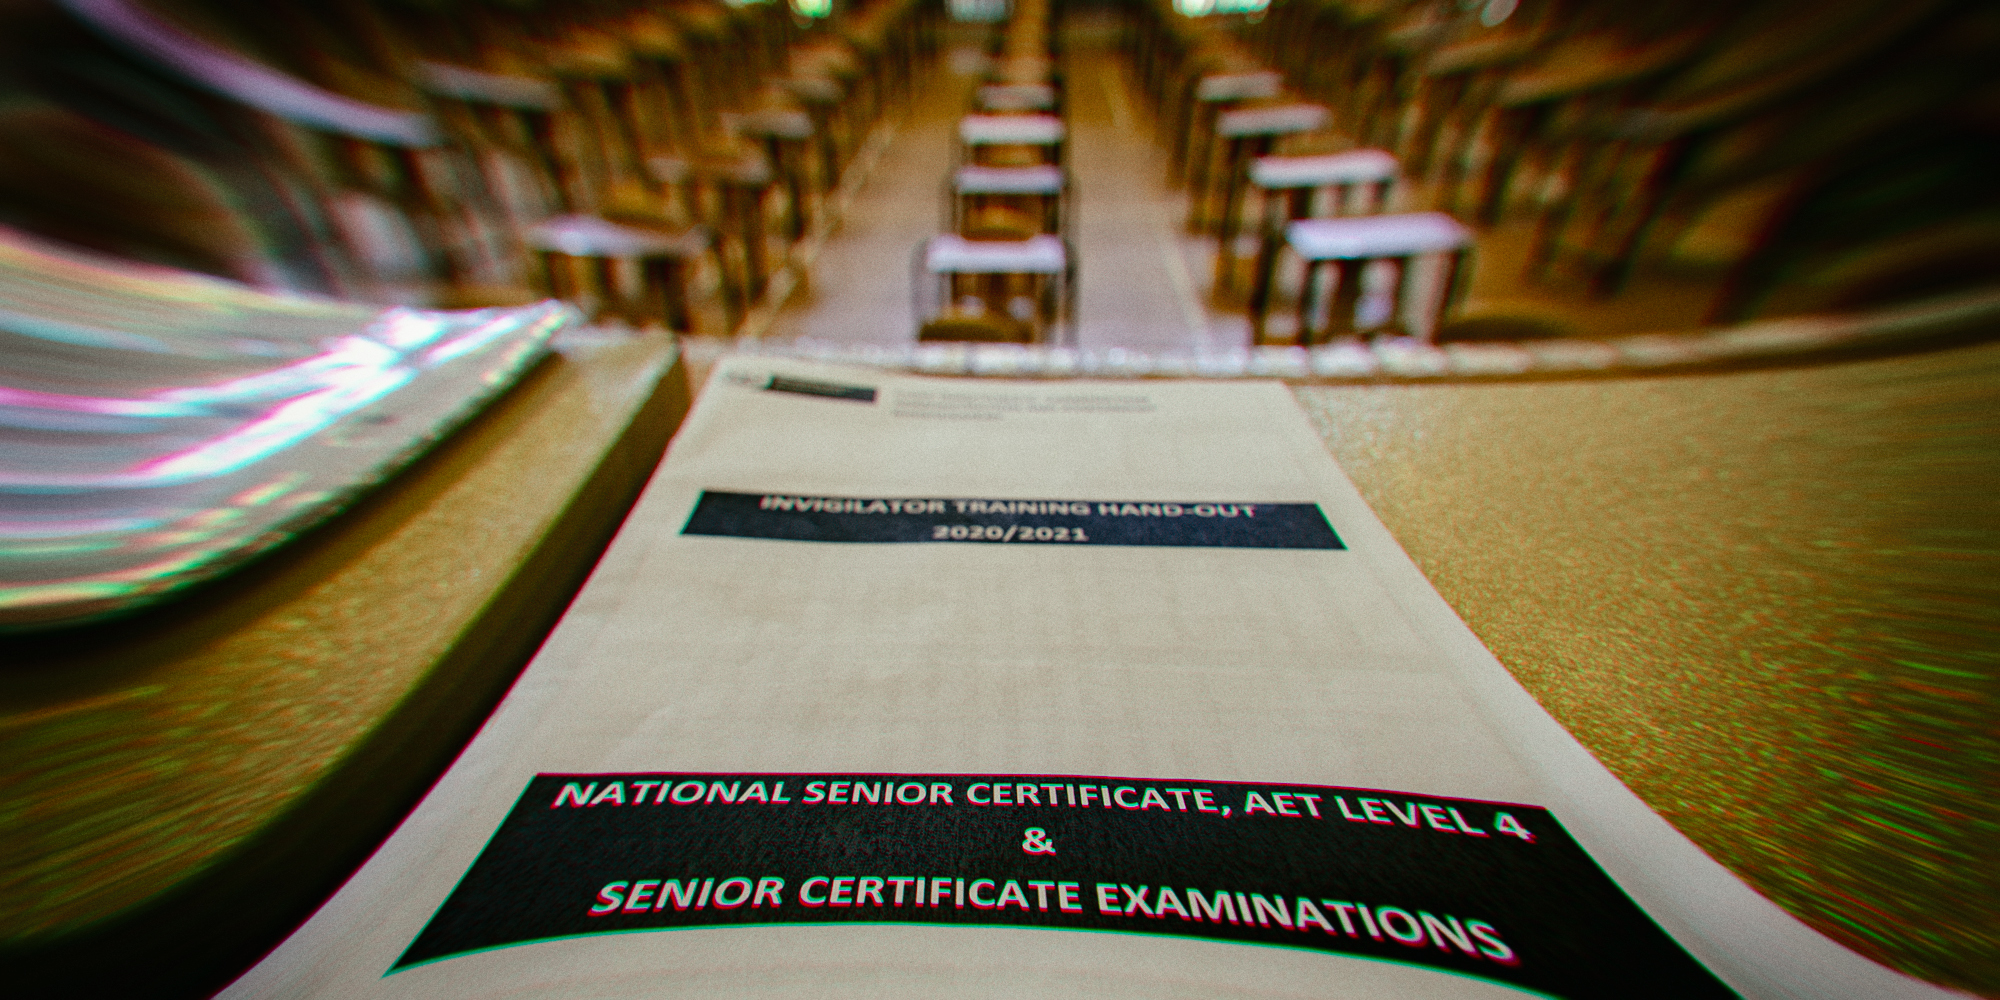 No need for alarm after matric exam paper leaks, says education department - Daily Maverick